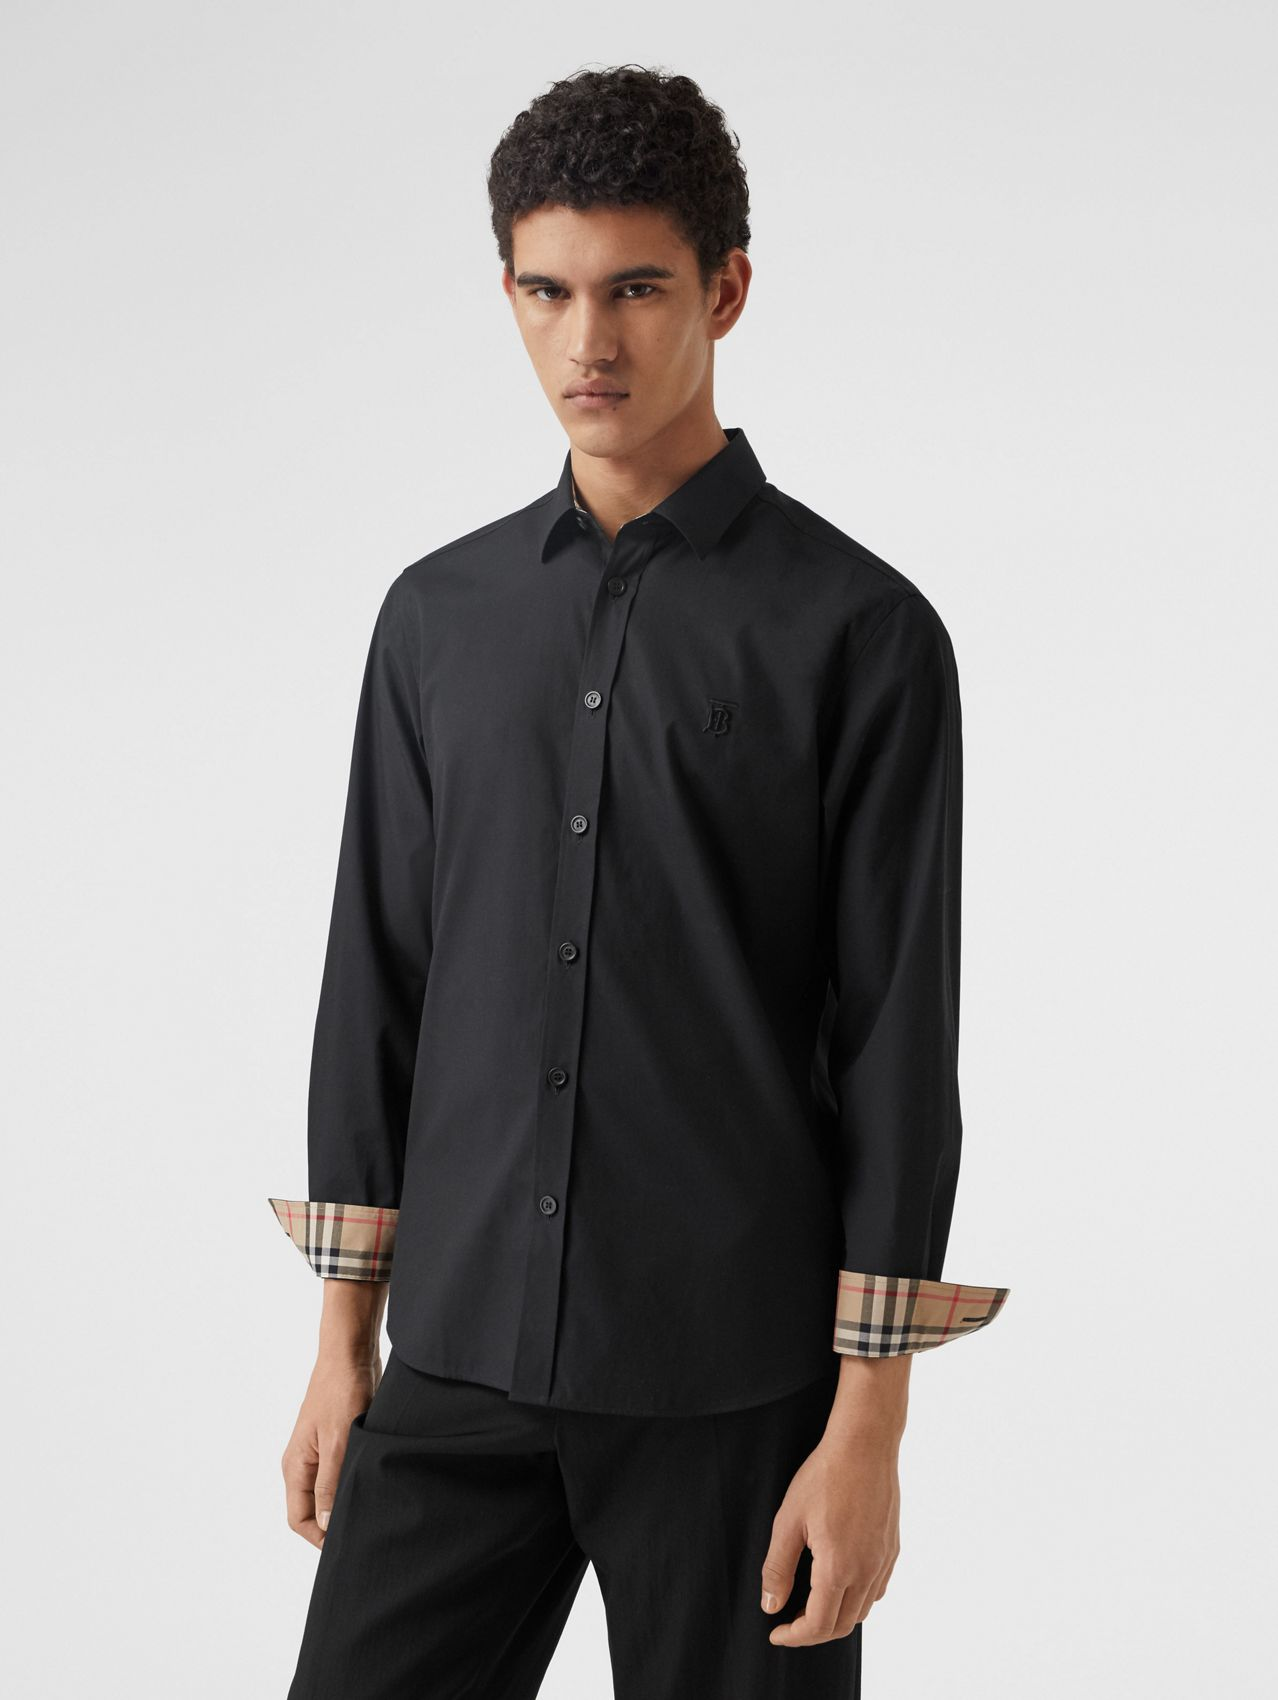 Slim Fit Monogram Motif Stretch Cotton Poplin Shirt in Black